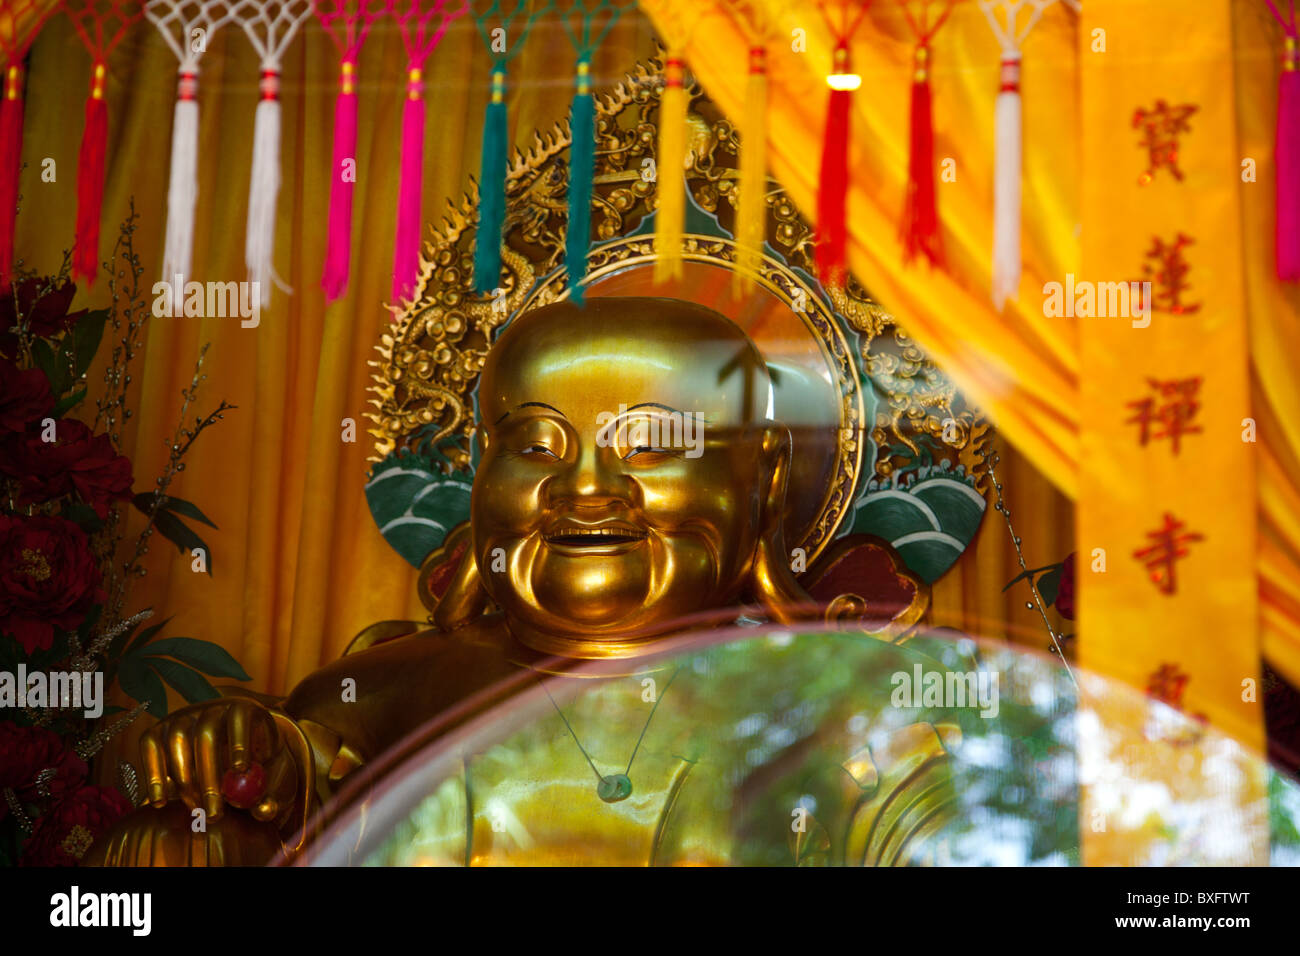 The Po Lin Monastery is located in Ngong Ping on Lantau Island in Hong Kong. Detail inside the monastery - Stock Image